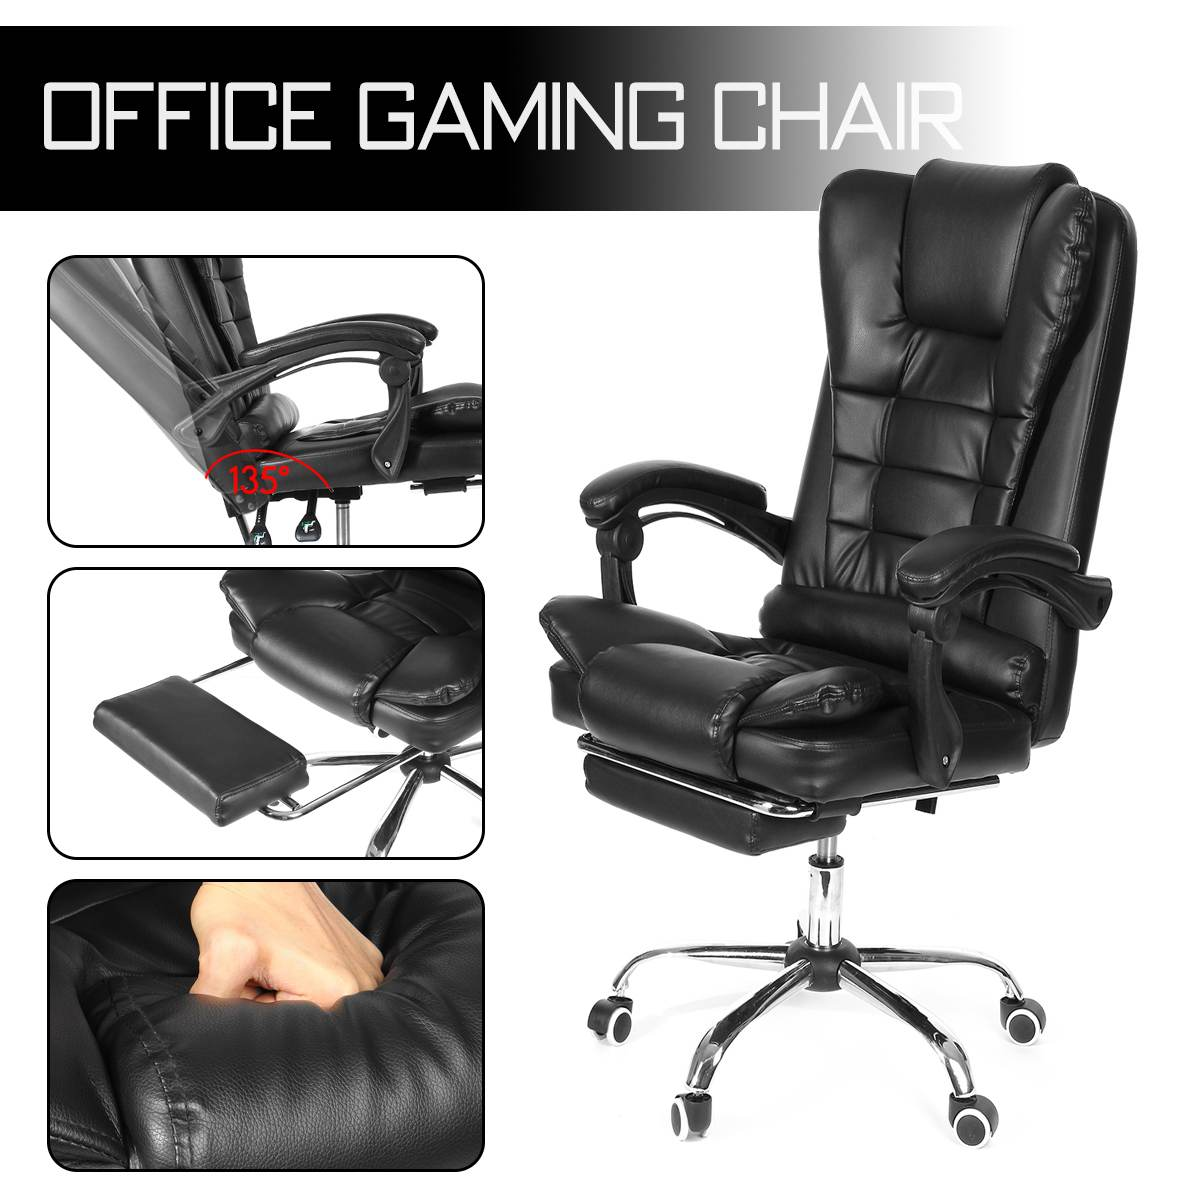 H0a5b2a174b50448abe15d7e9e75b0397b - WCG Gaming Chair Computer Armchair Office Chairs Home Swivel Massage Chair Lifting Adjustable Desk Chair Lying Recliner Chair